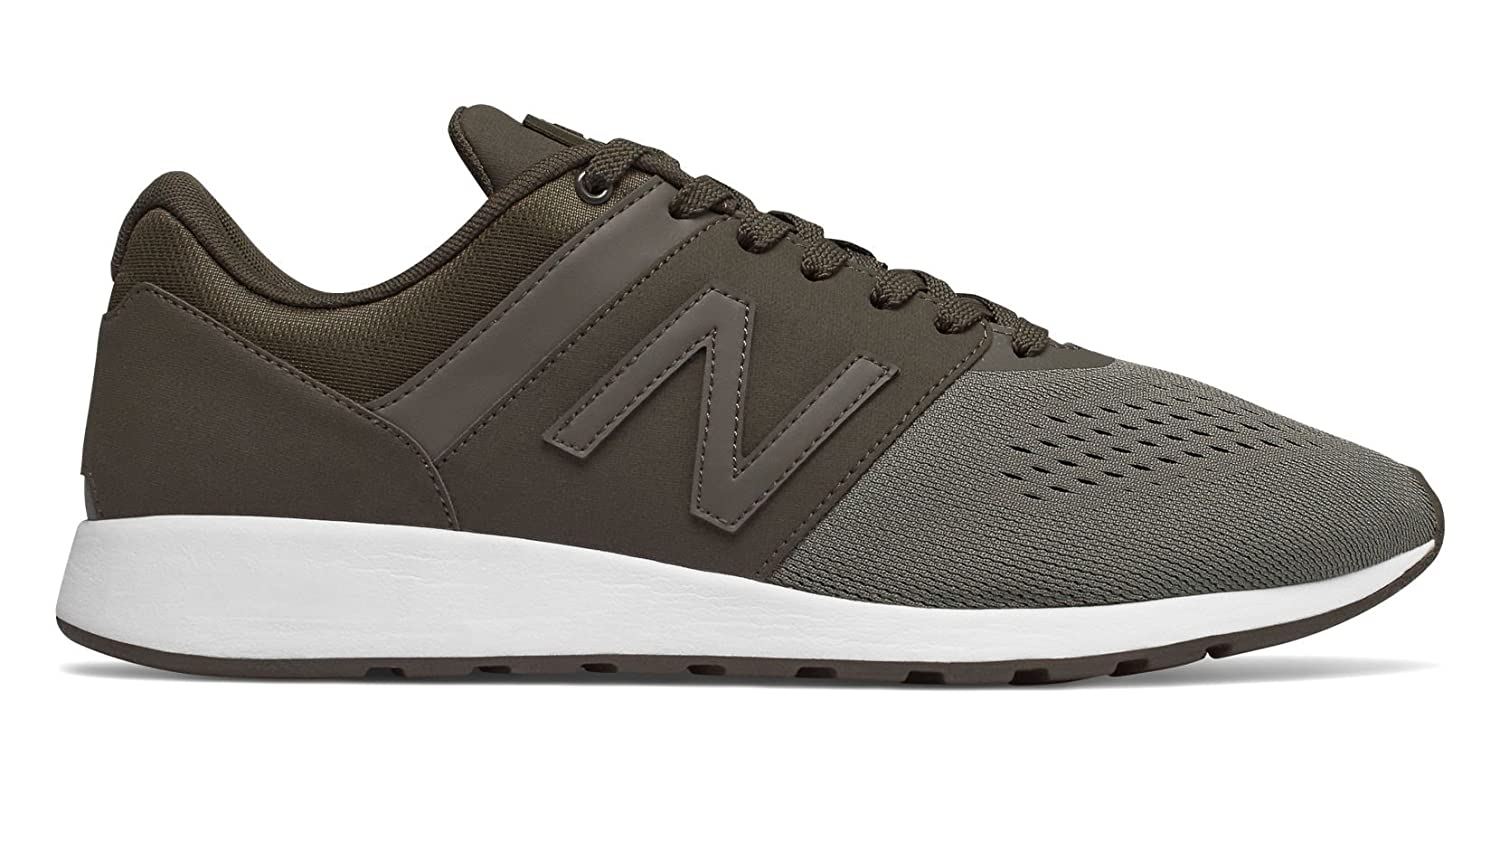 New Balance Men's 24v1 Sneaker 9 4E US|Military Olive